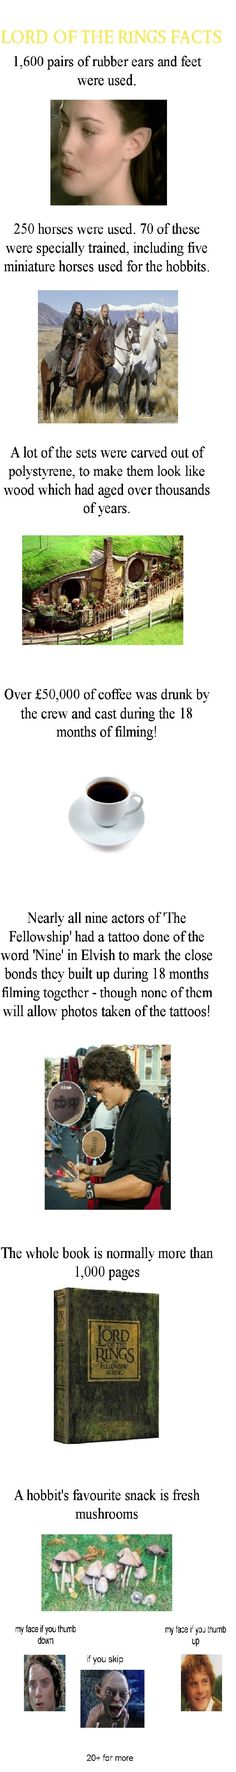 LotR facts ... lol, my presence would have made the amount of coffee drunk go up by another two billion :D:D:D